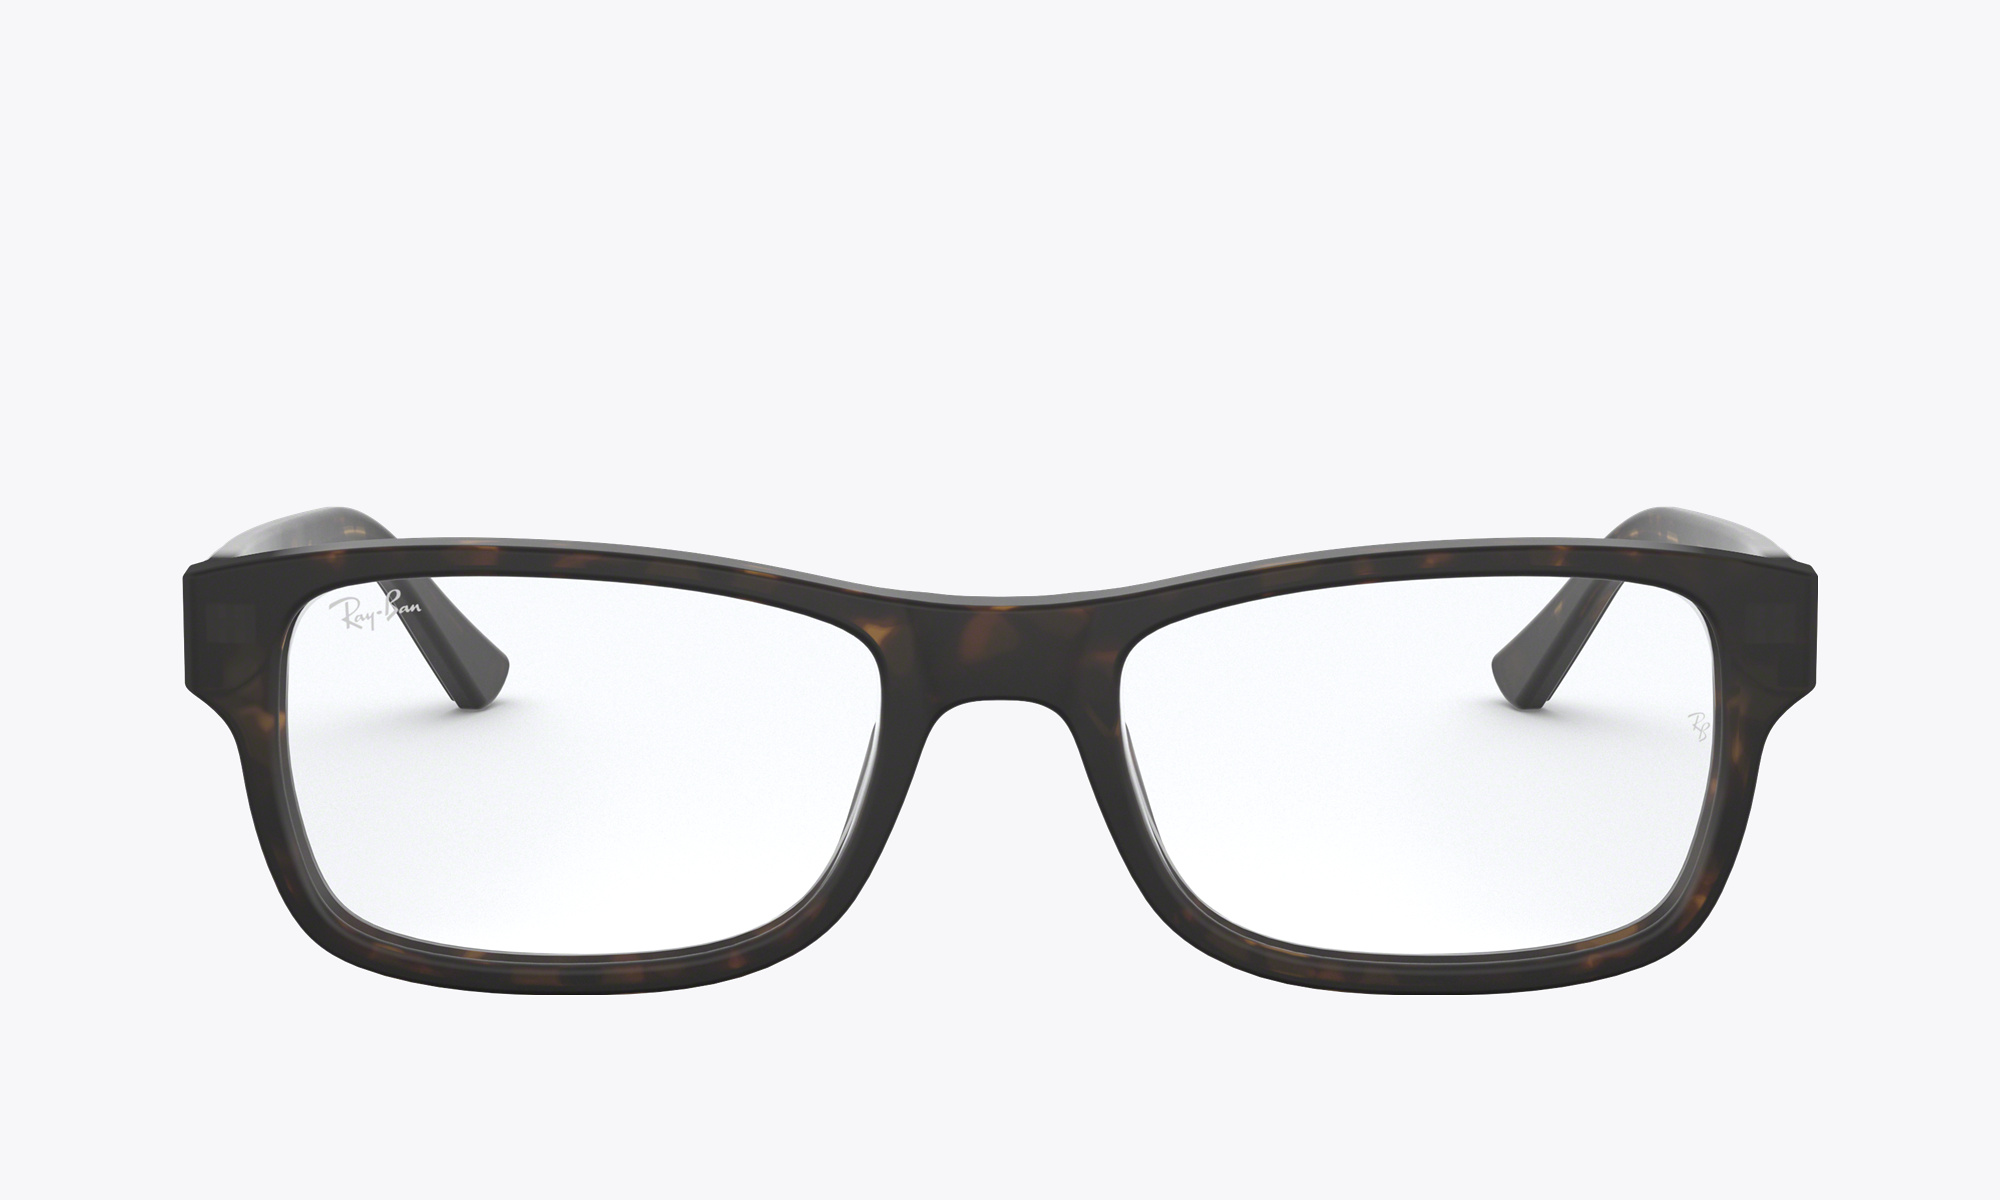 Image of Ray-Ban RX5268 color Tortoise